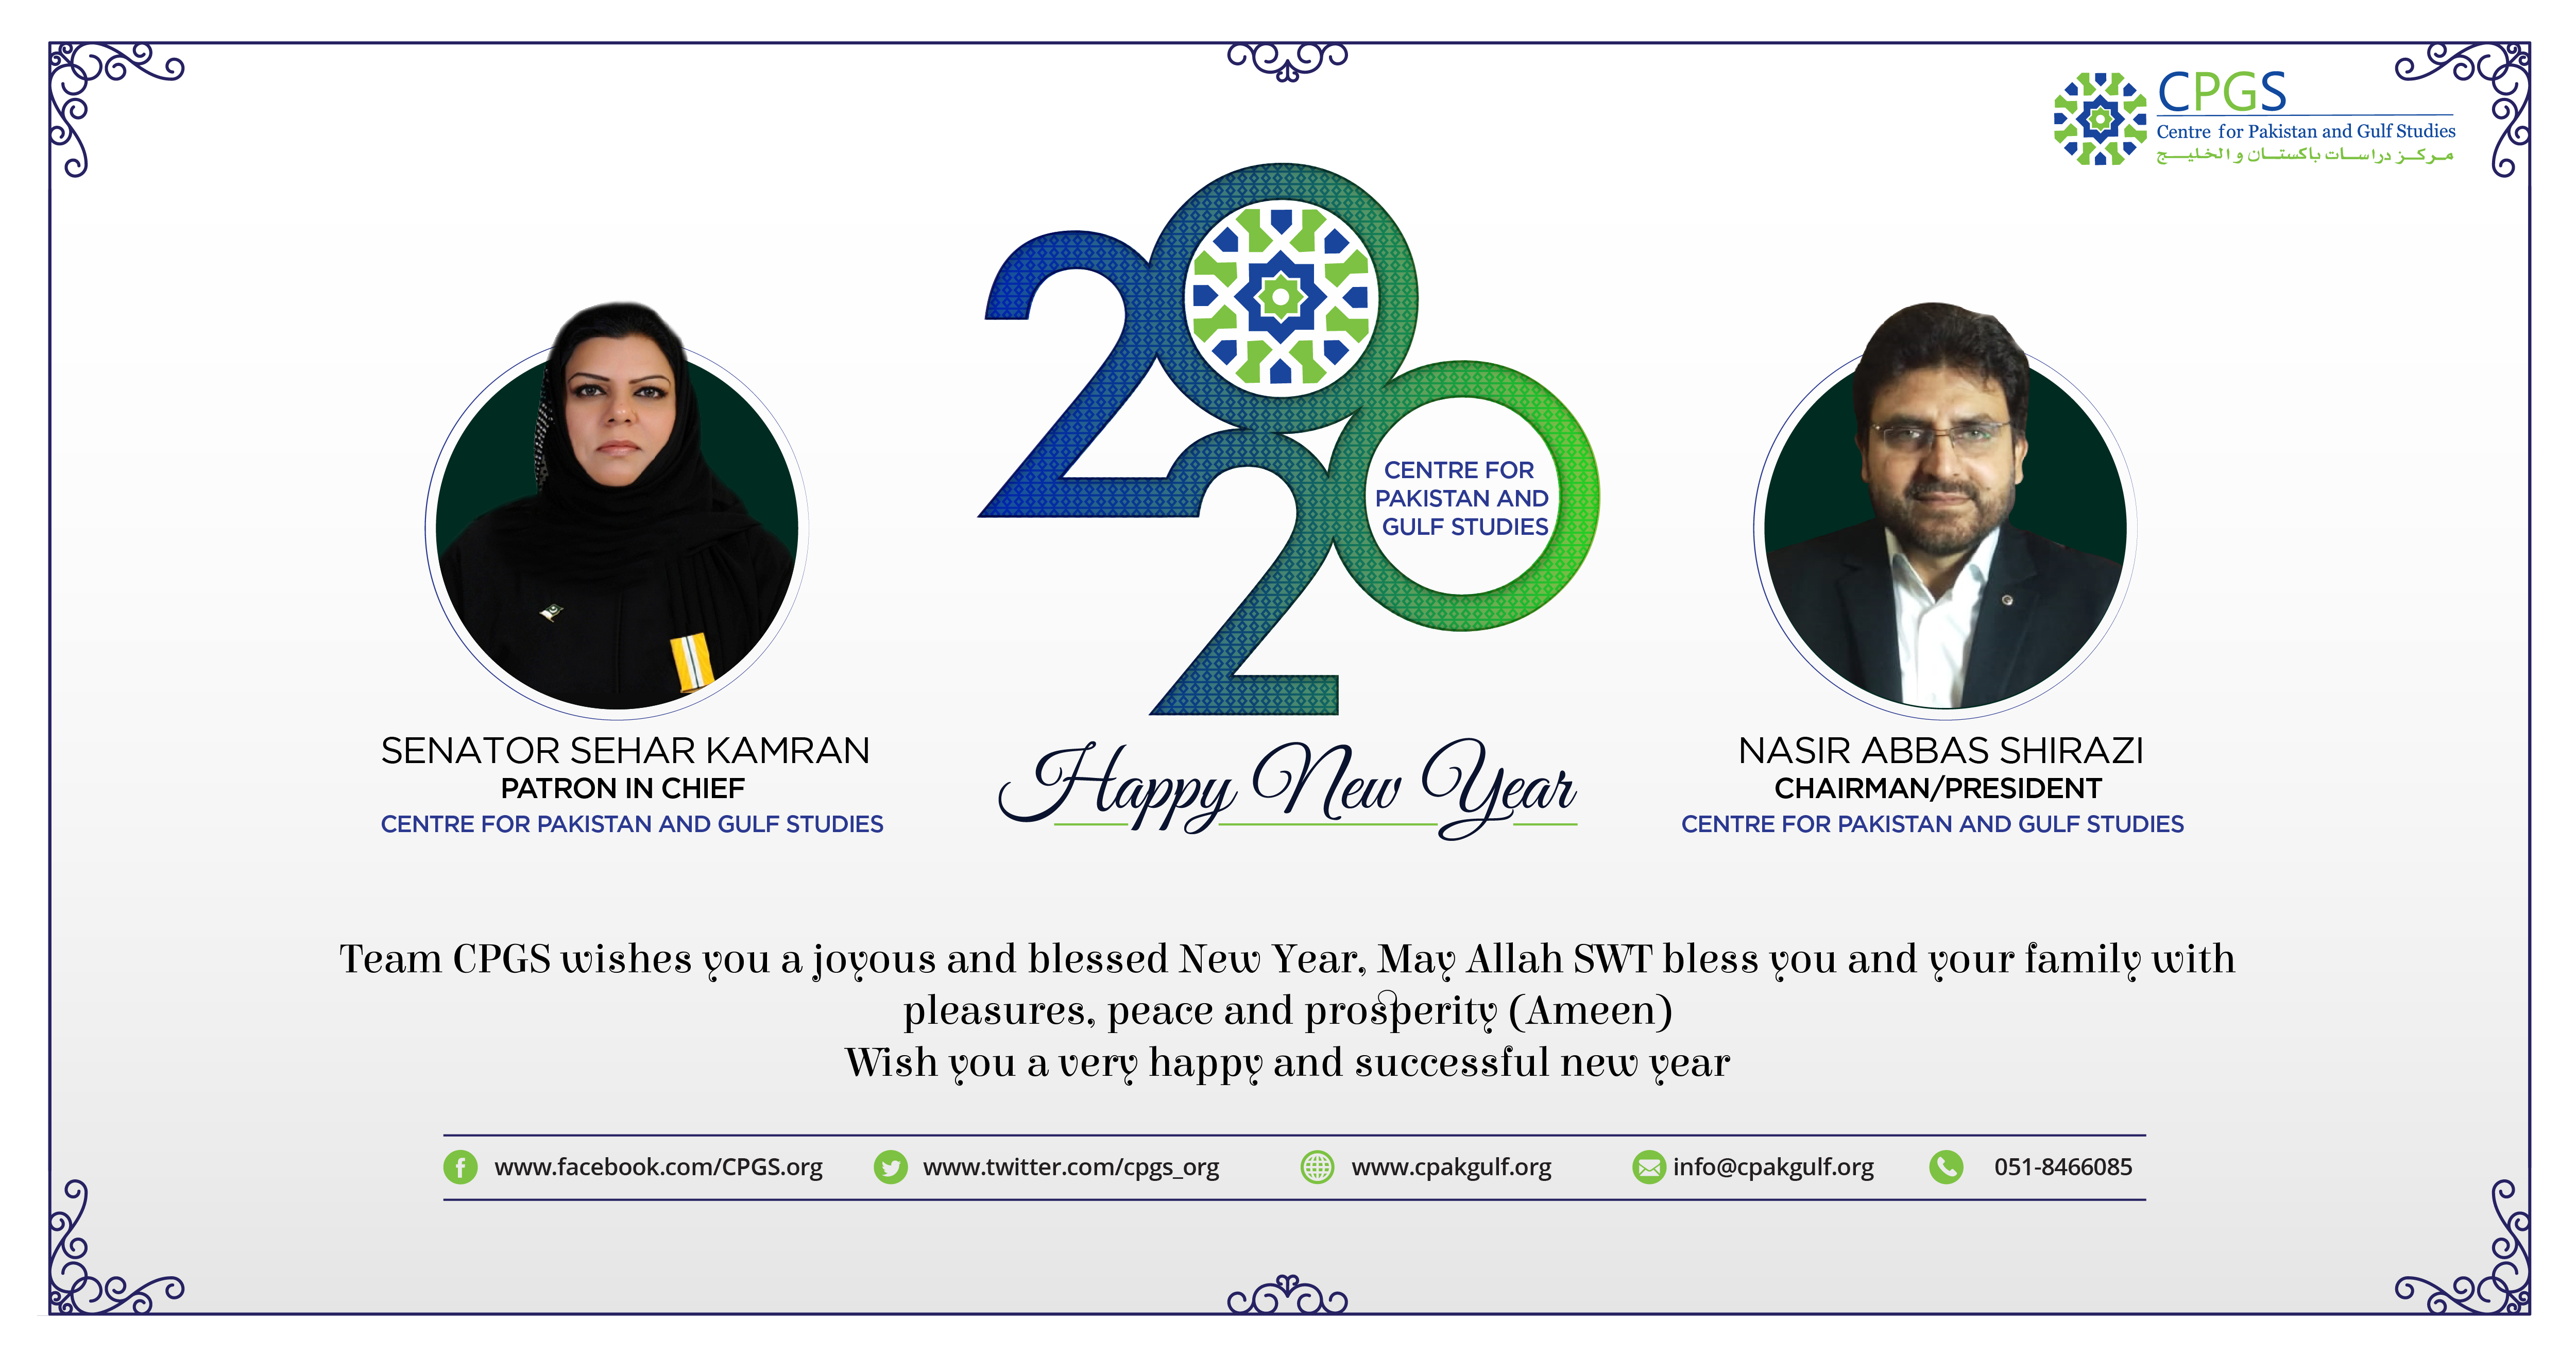 Team CPGS Wishes You a Joyous and Blessed New Year